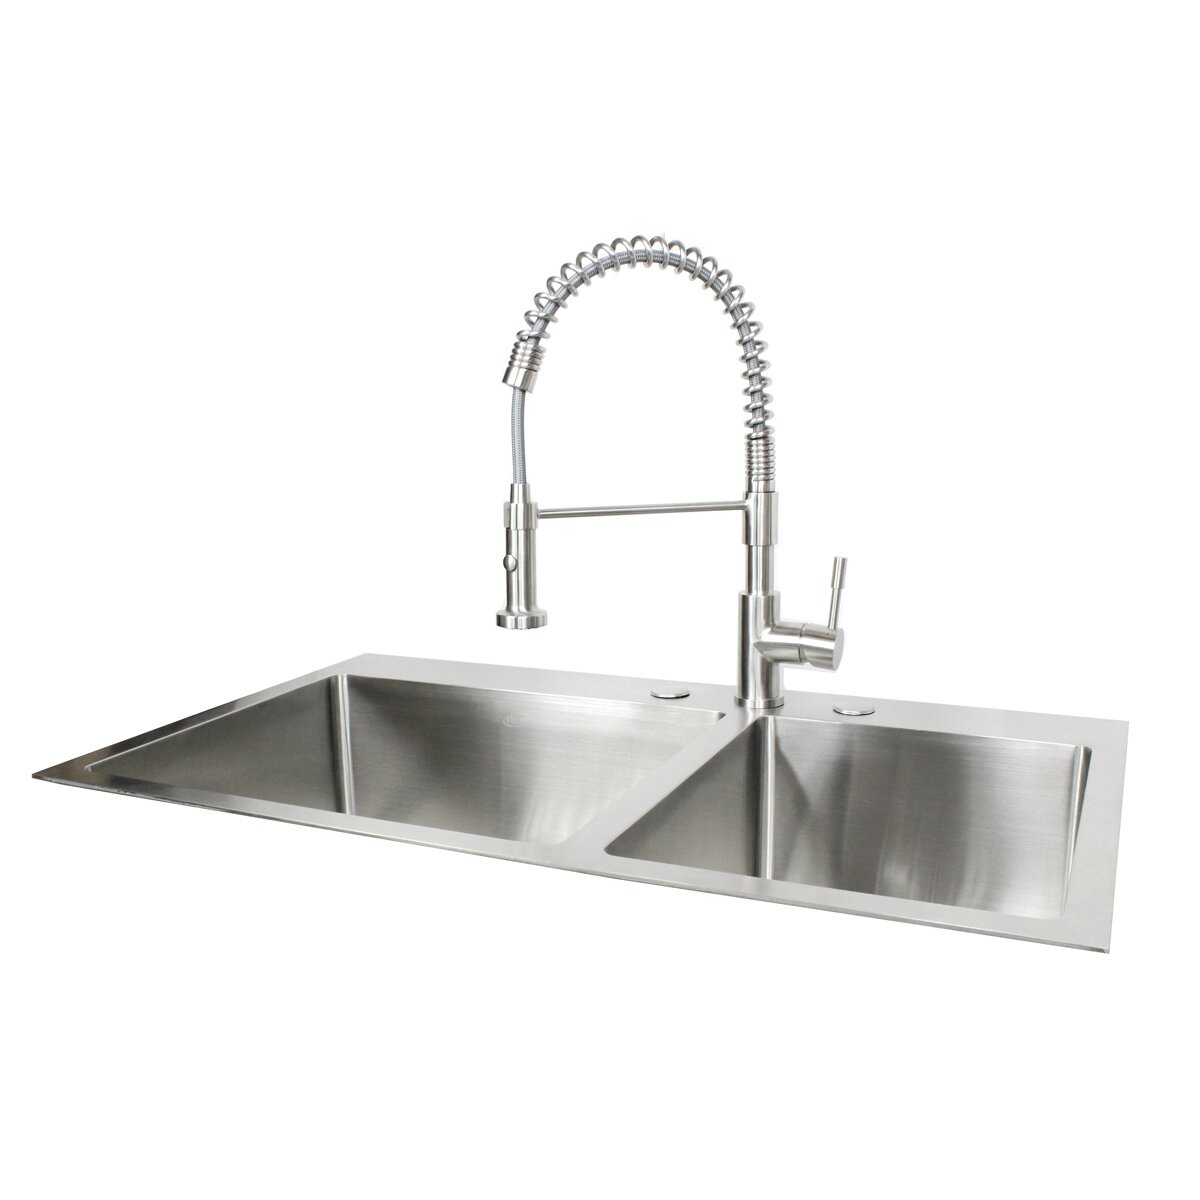 36 Kitchen Sink : eModern Decor 36